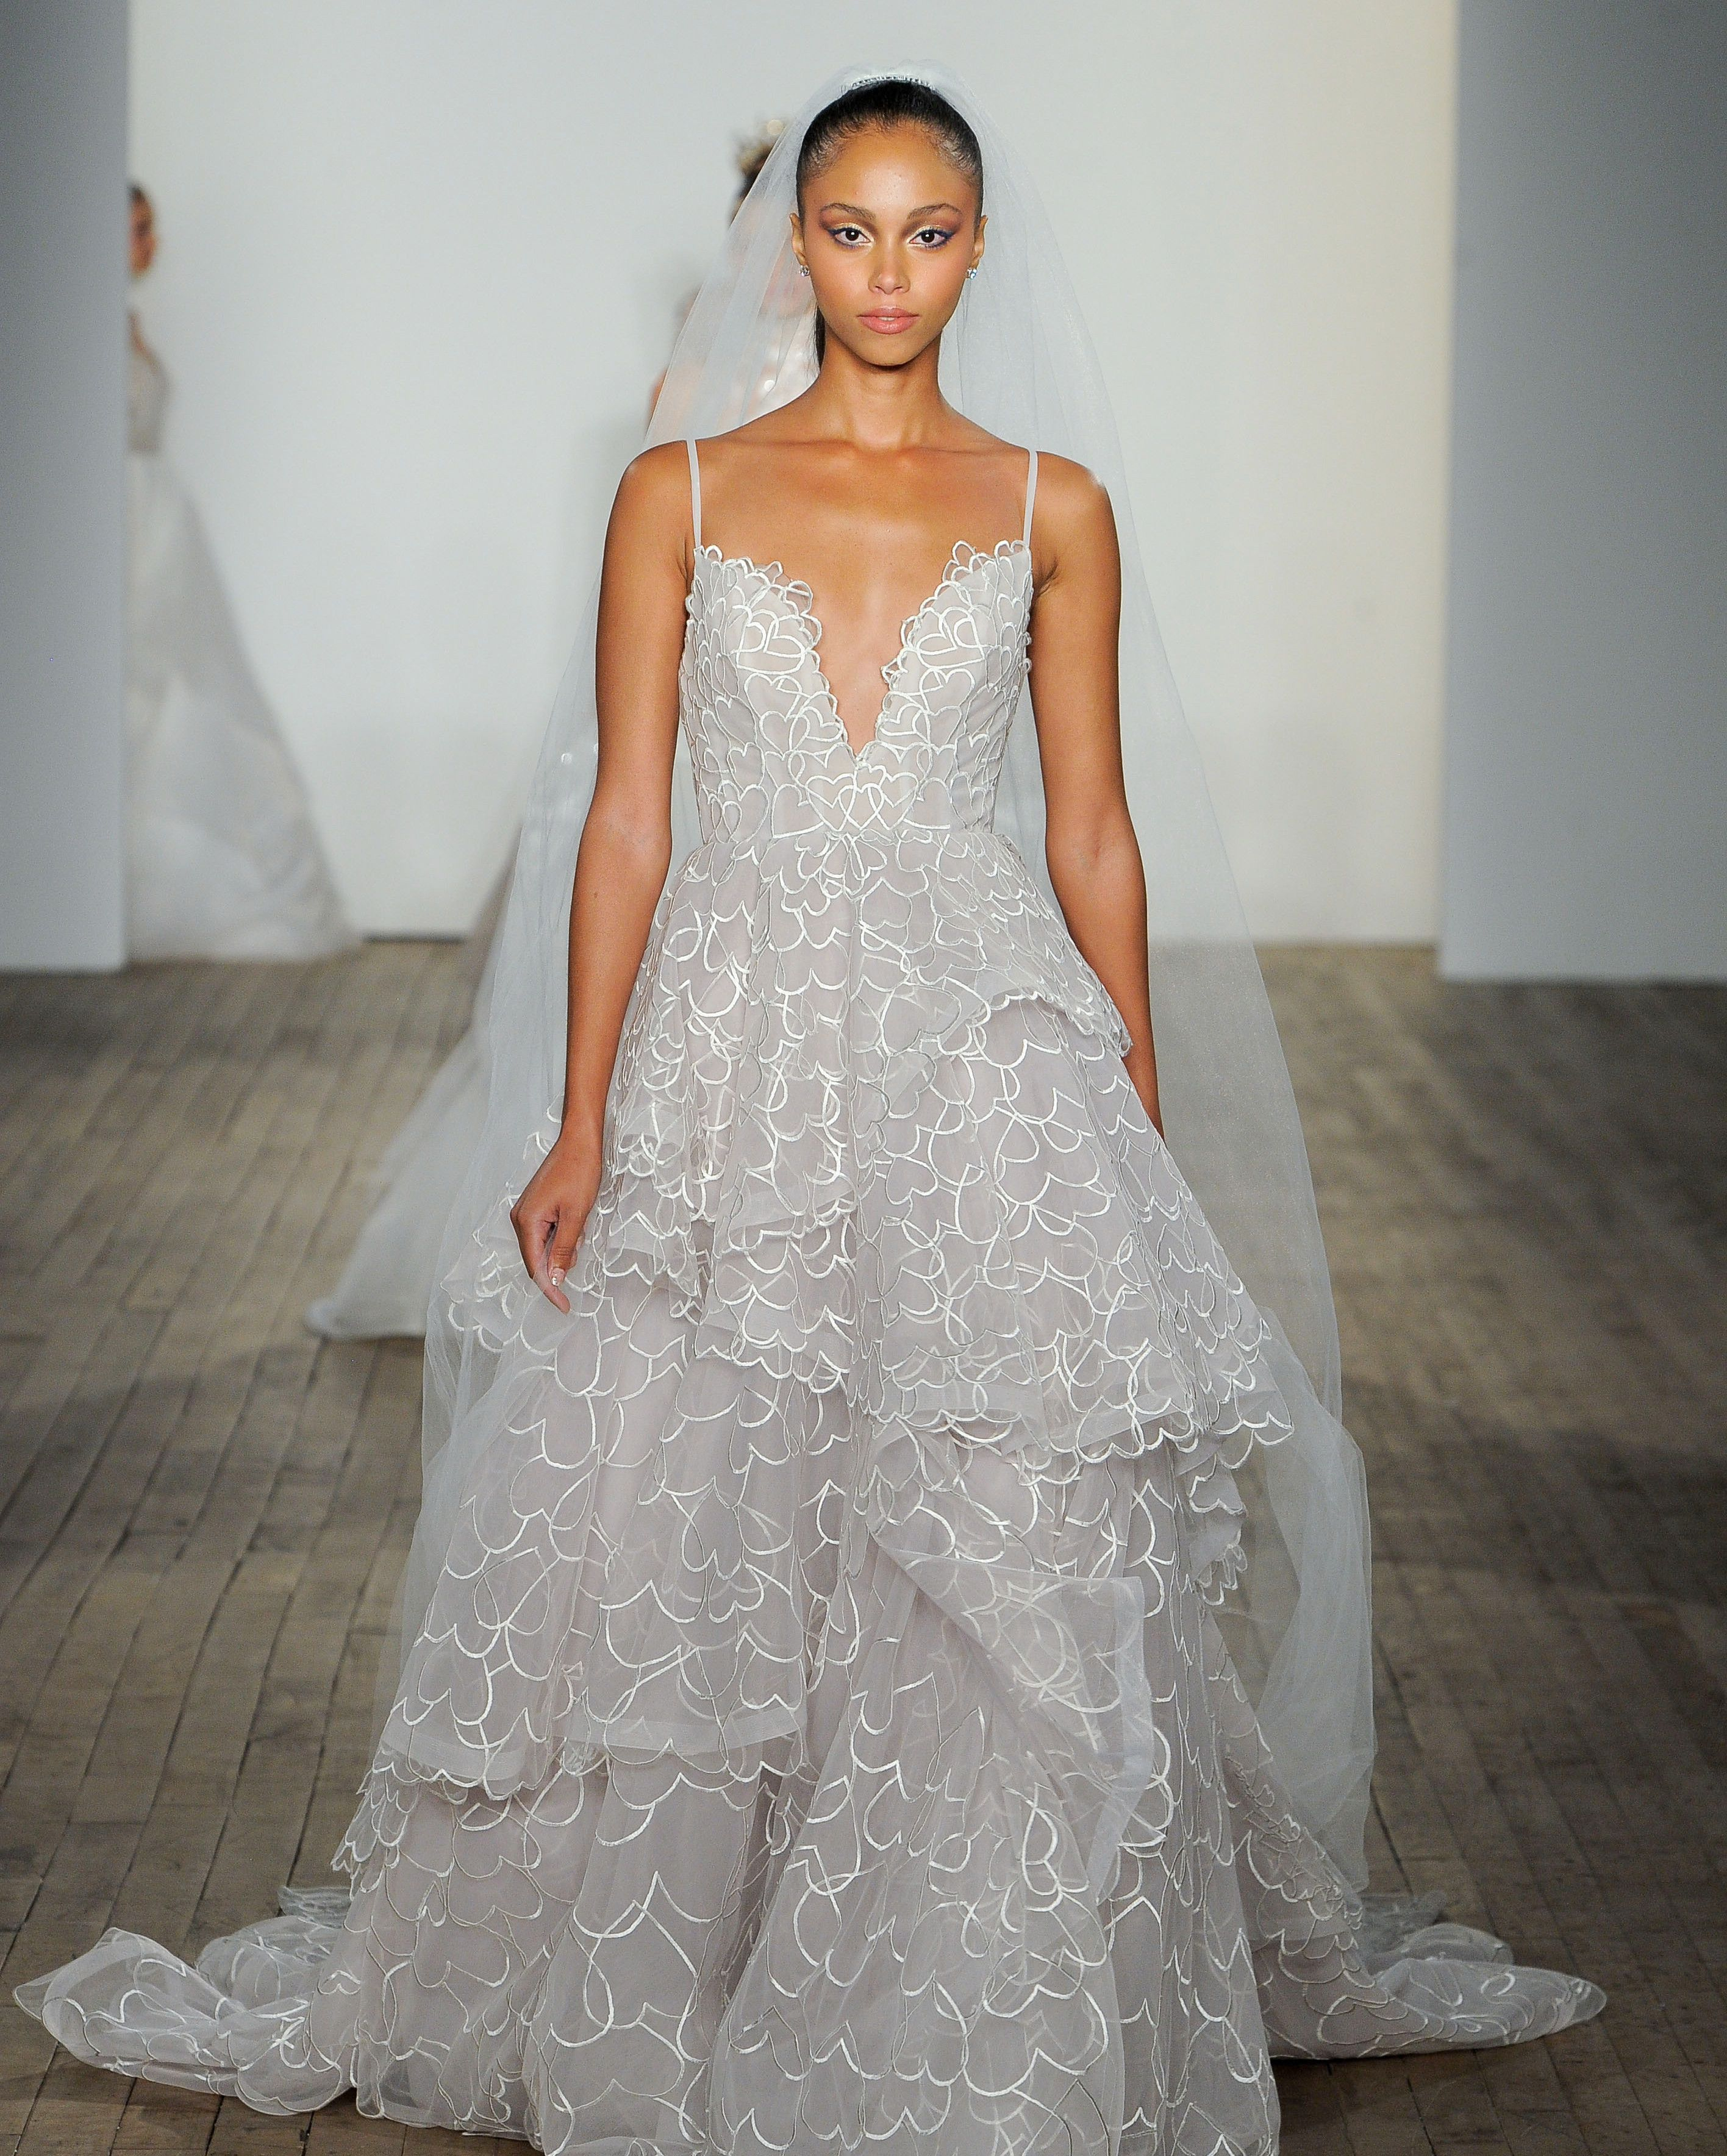 Most Beautiful Ball Gown Wedding Dresses: Hayley Paige Fall 2019 Wedding Dress Collection